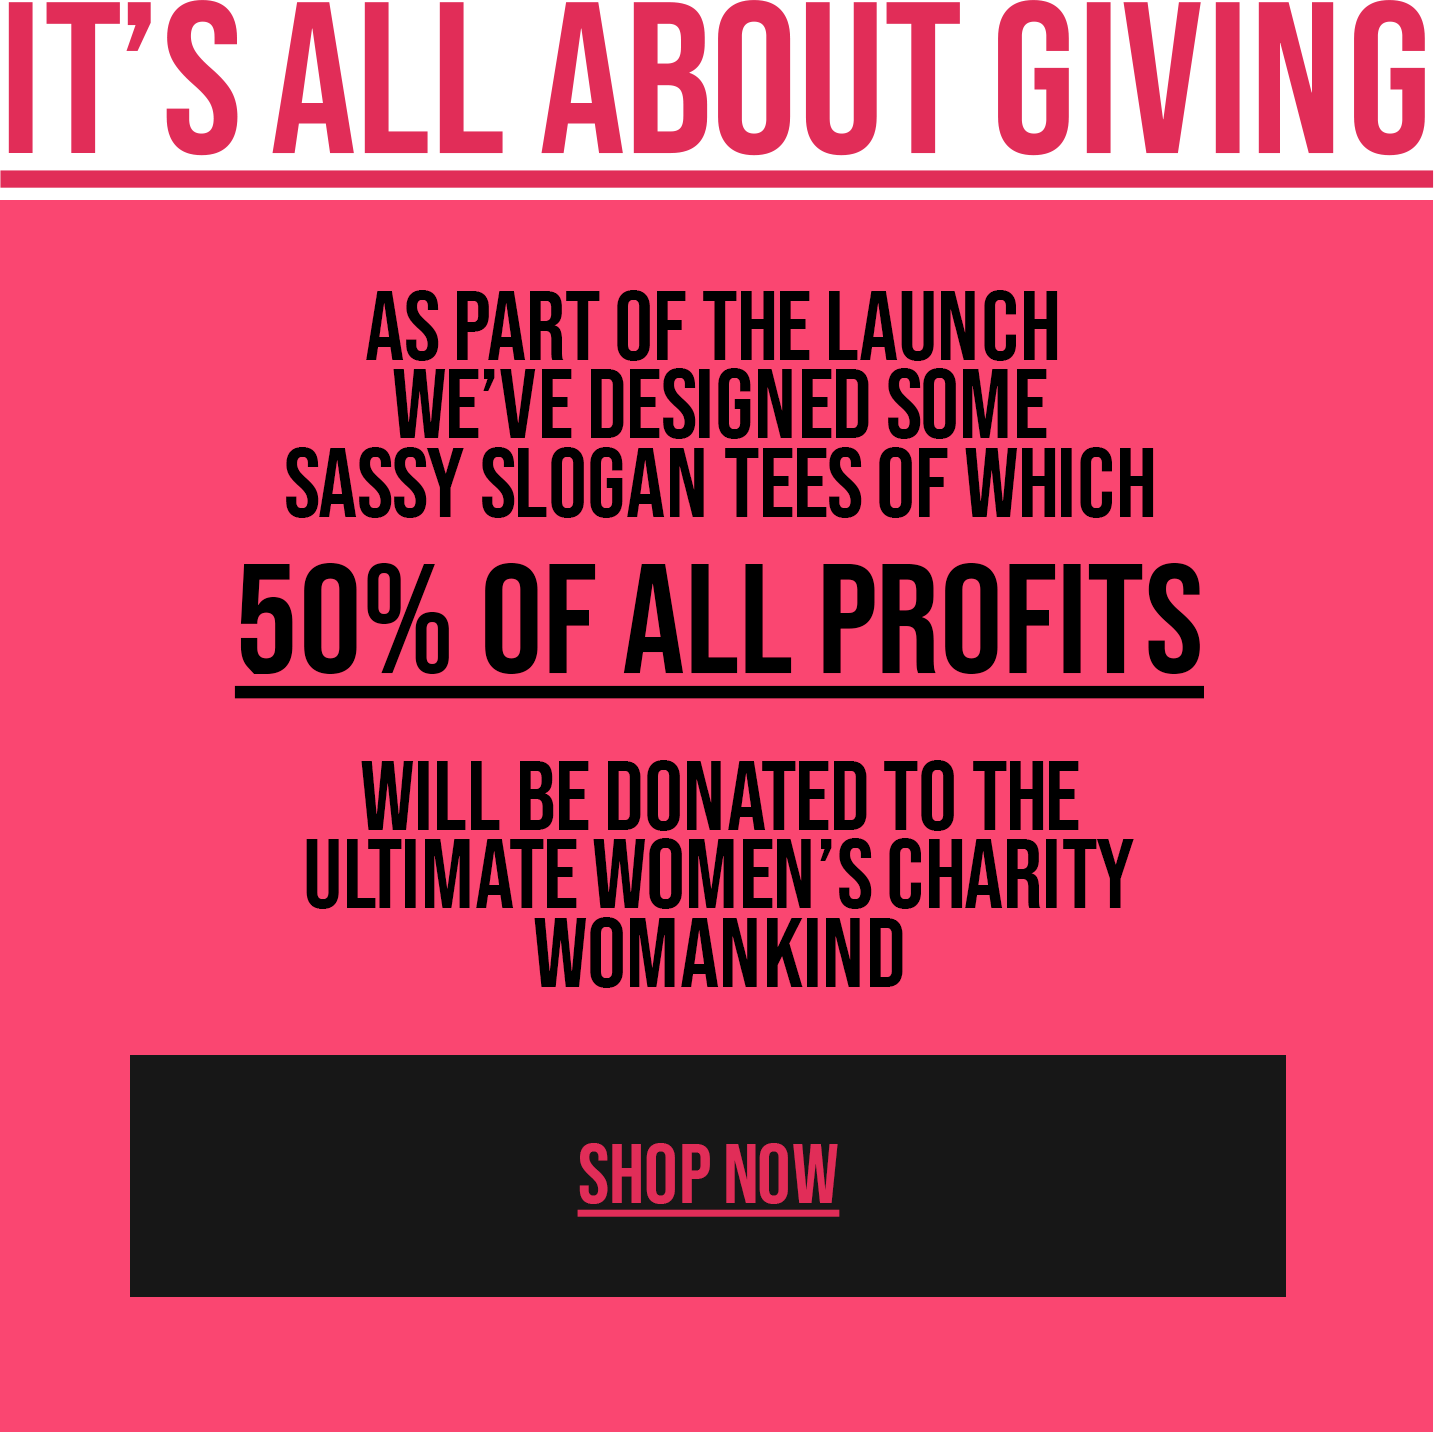 It's all about giving